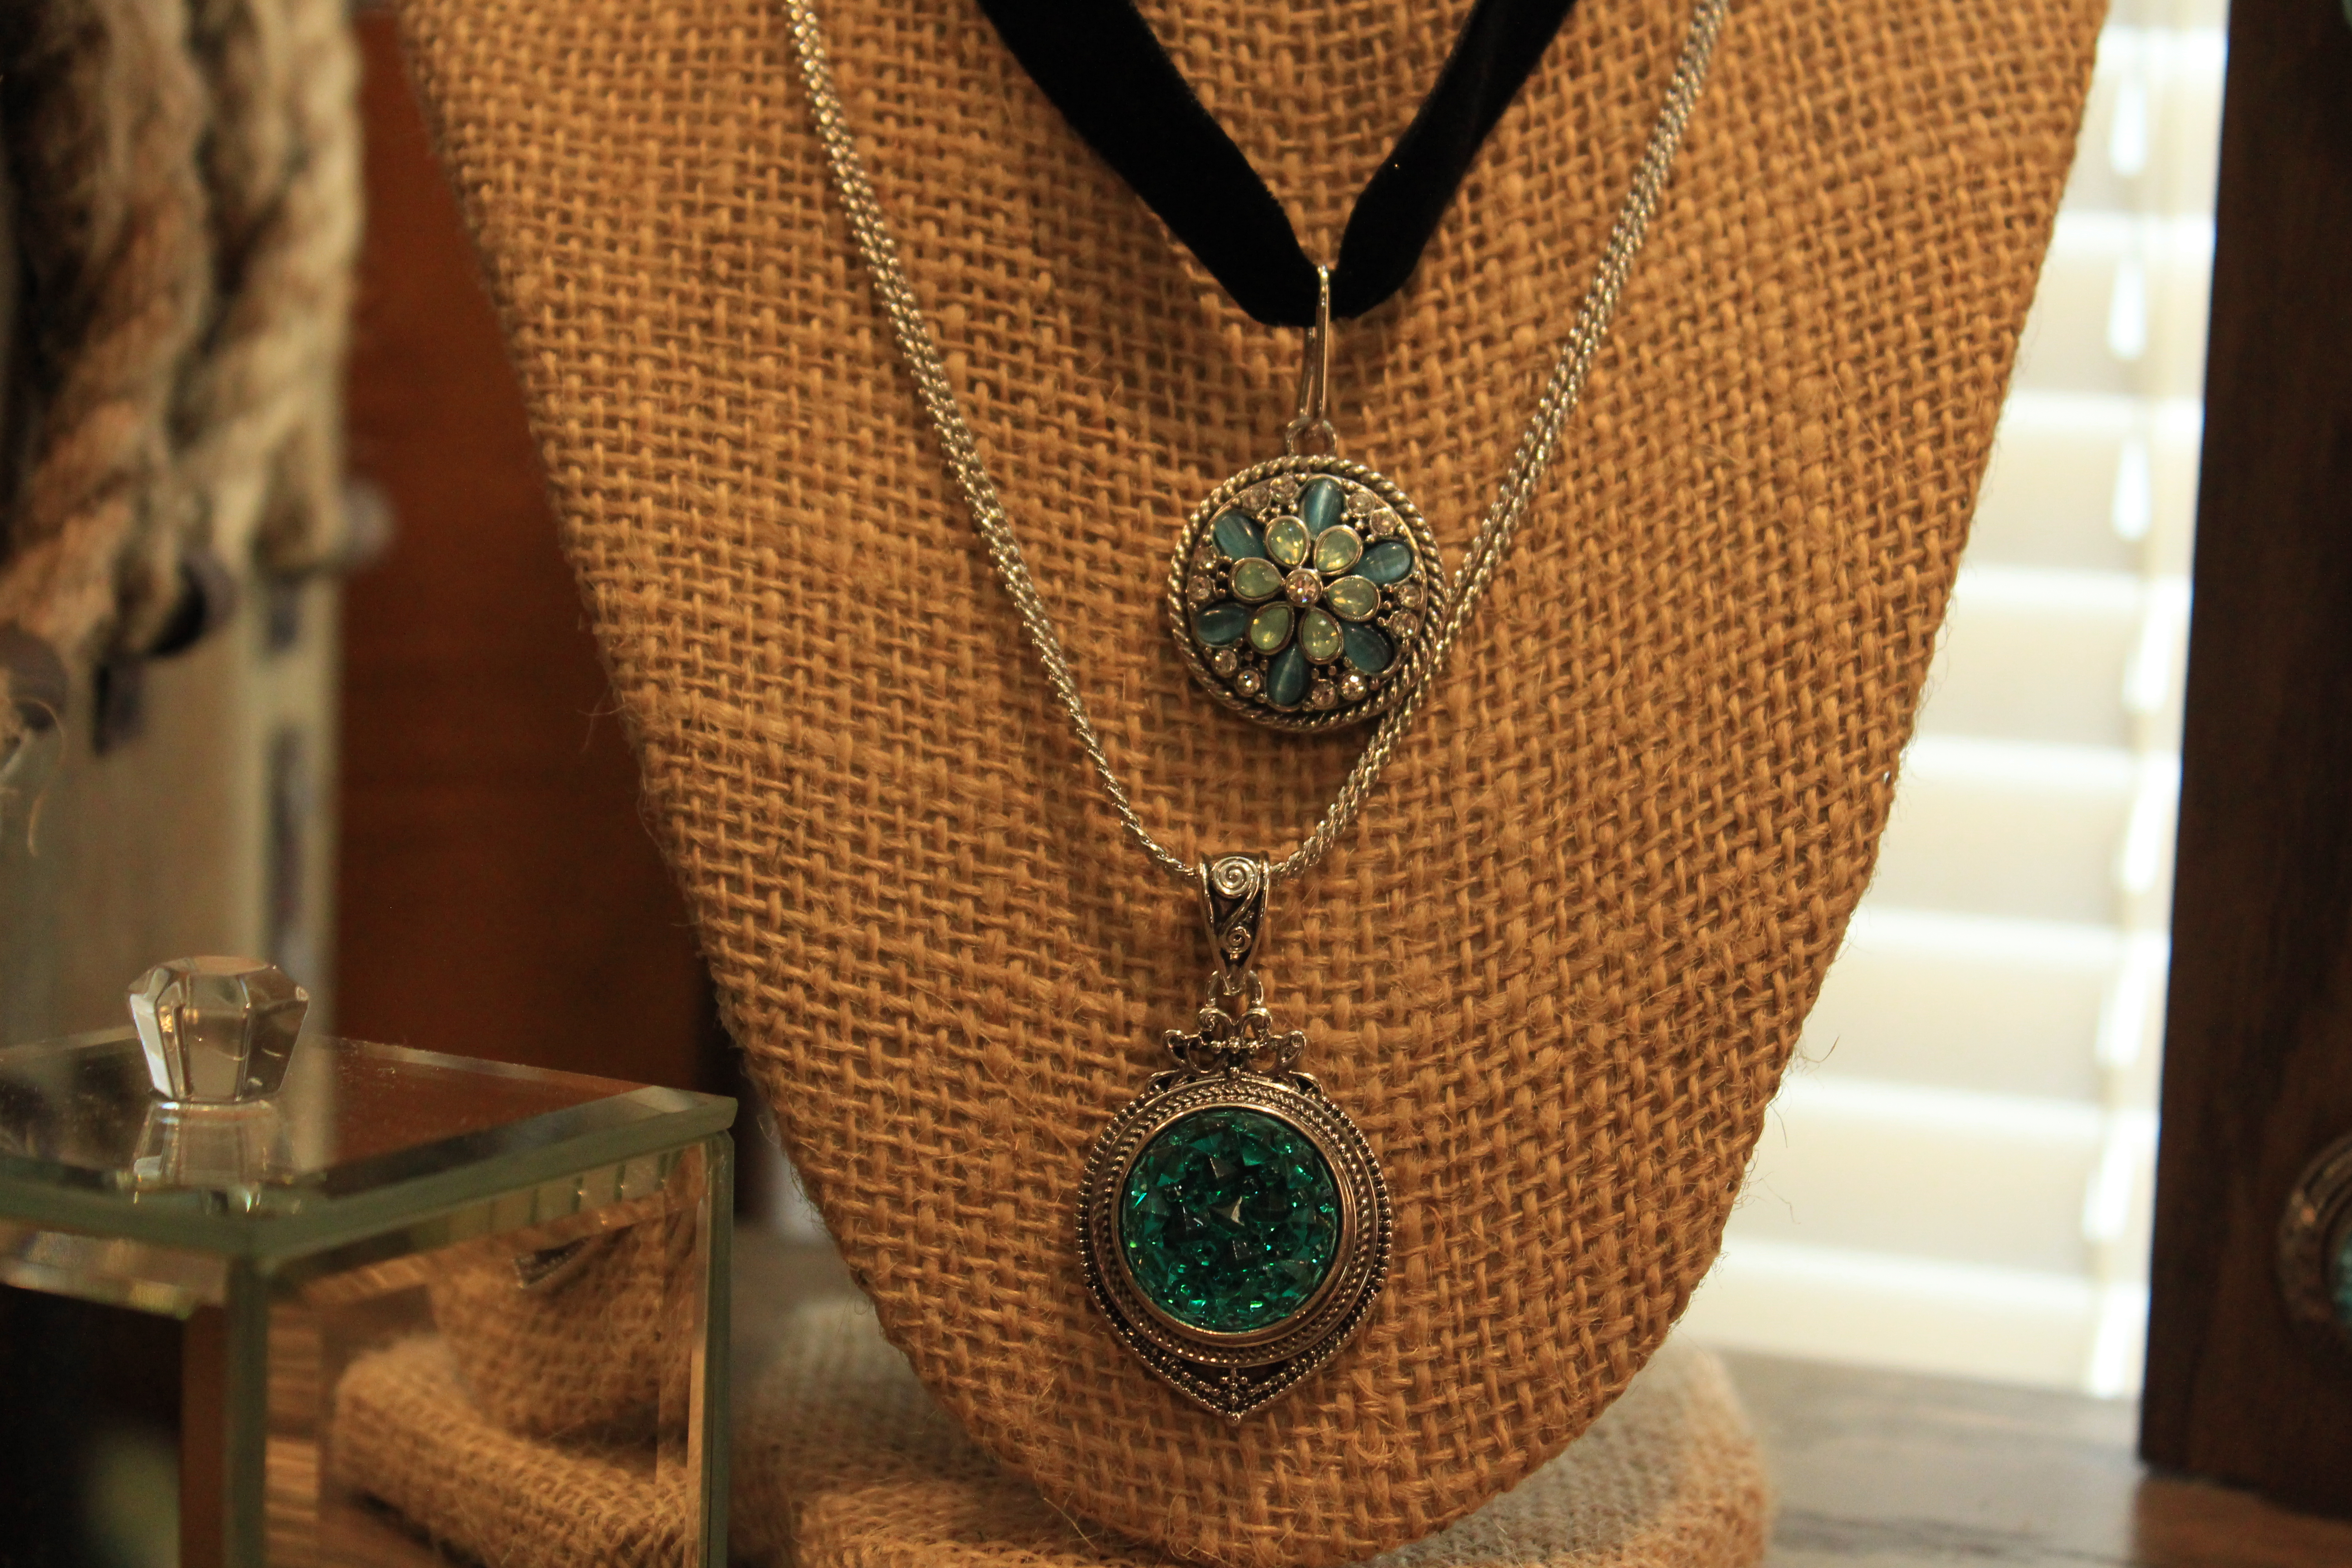 A GingerSnap necklace at Buckets